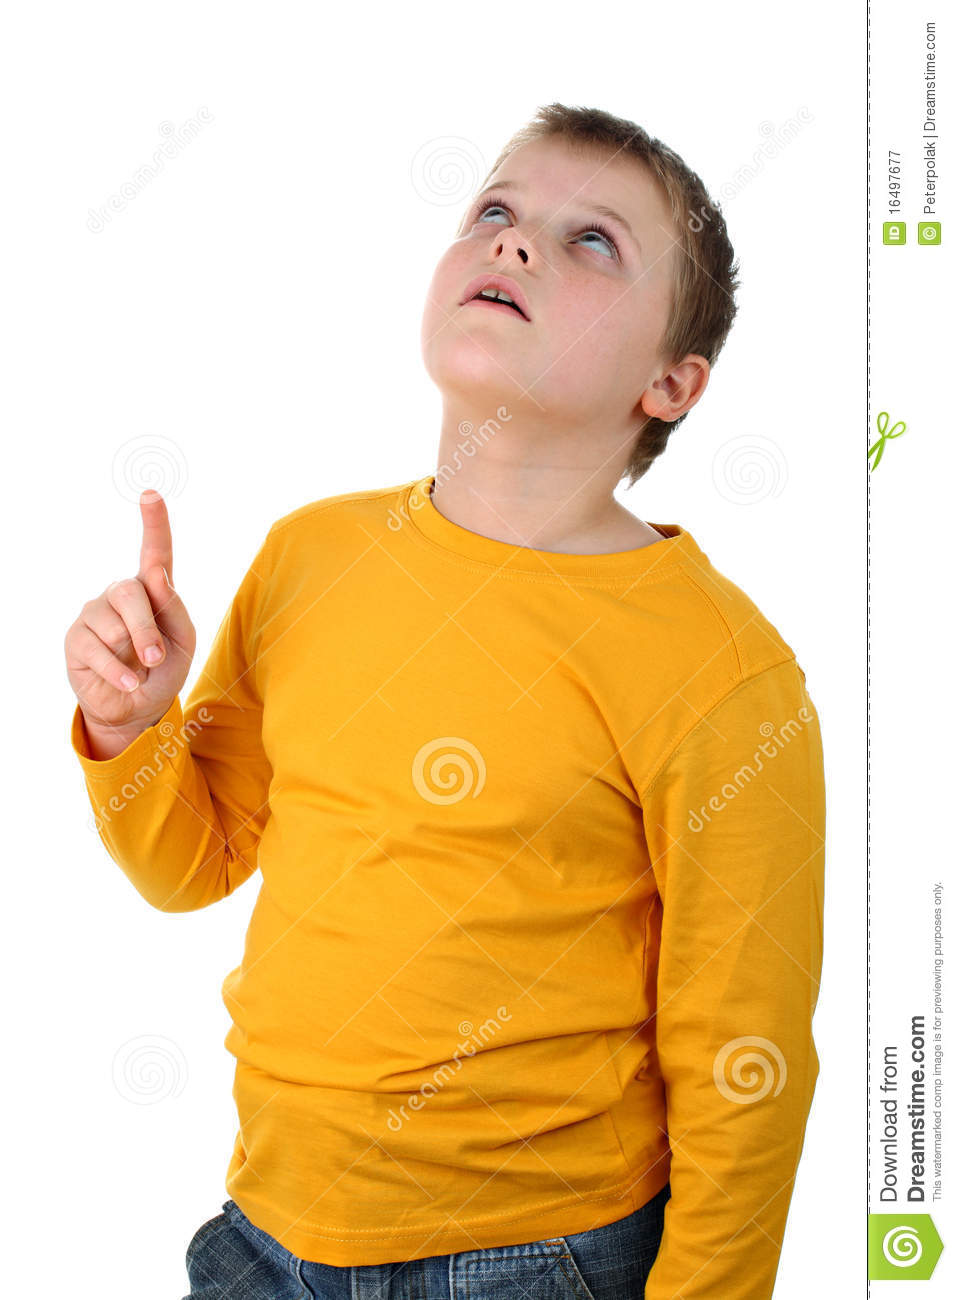 ... Stock Photography: Young boy points his finger up isolated on white